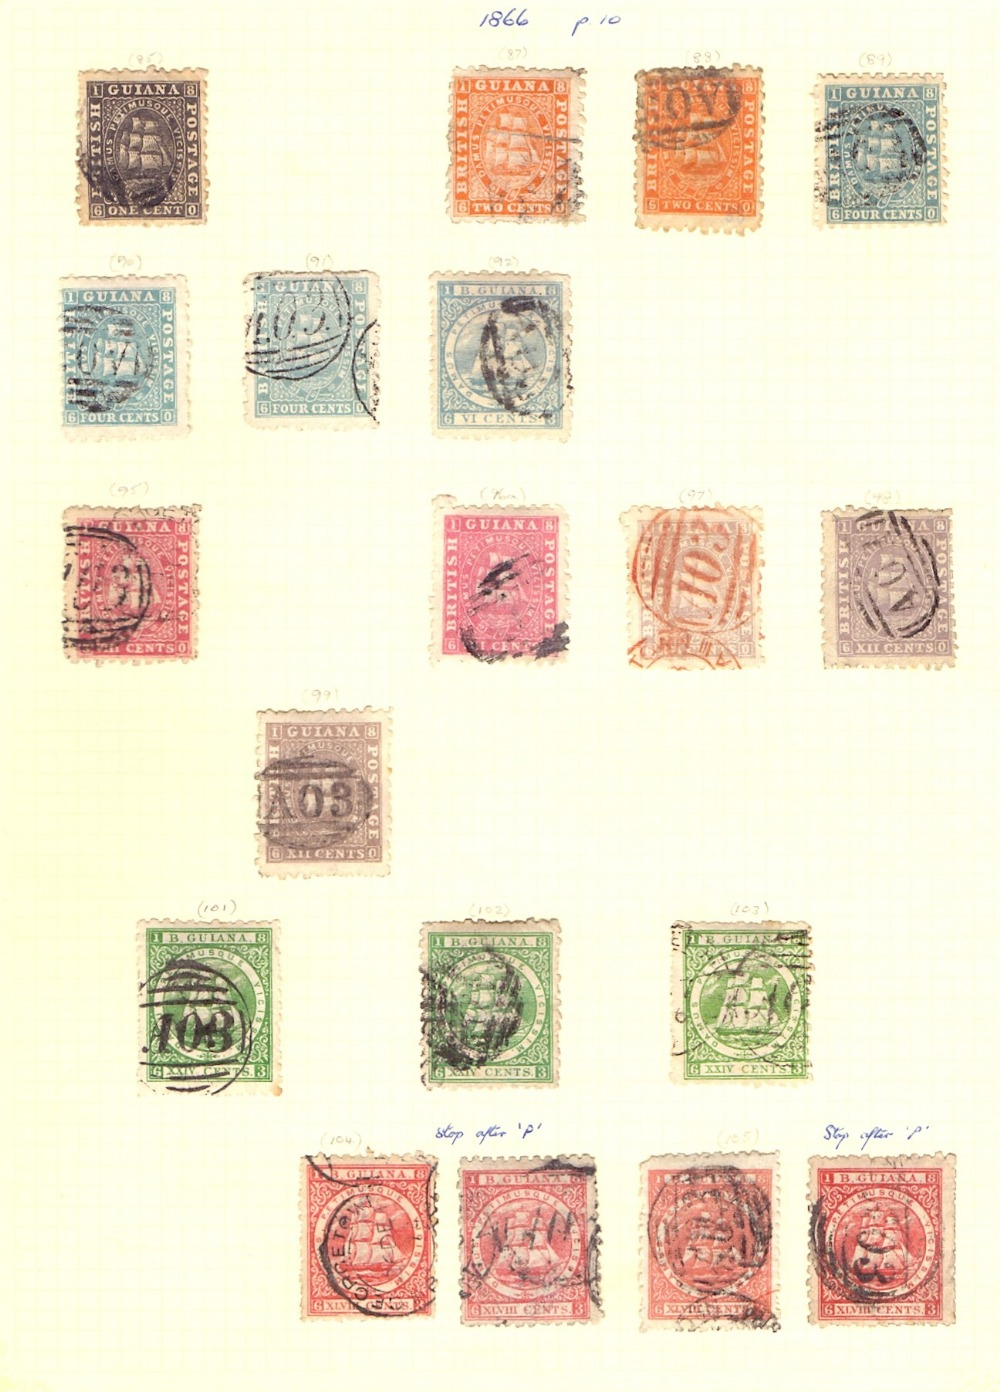 Lot 19 - STAMPS : BRITISH COMMONWEALTH, small album with mint & used QV issues for Antigua,